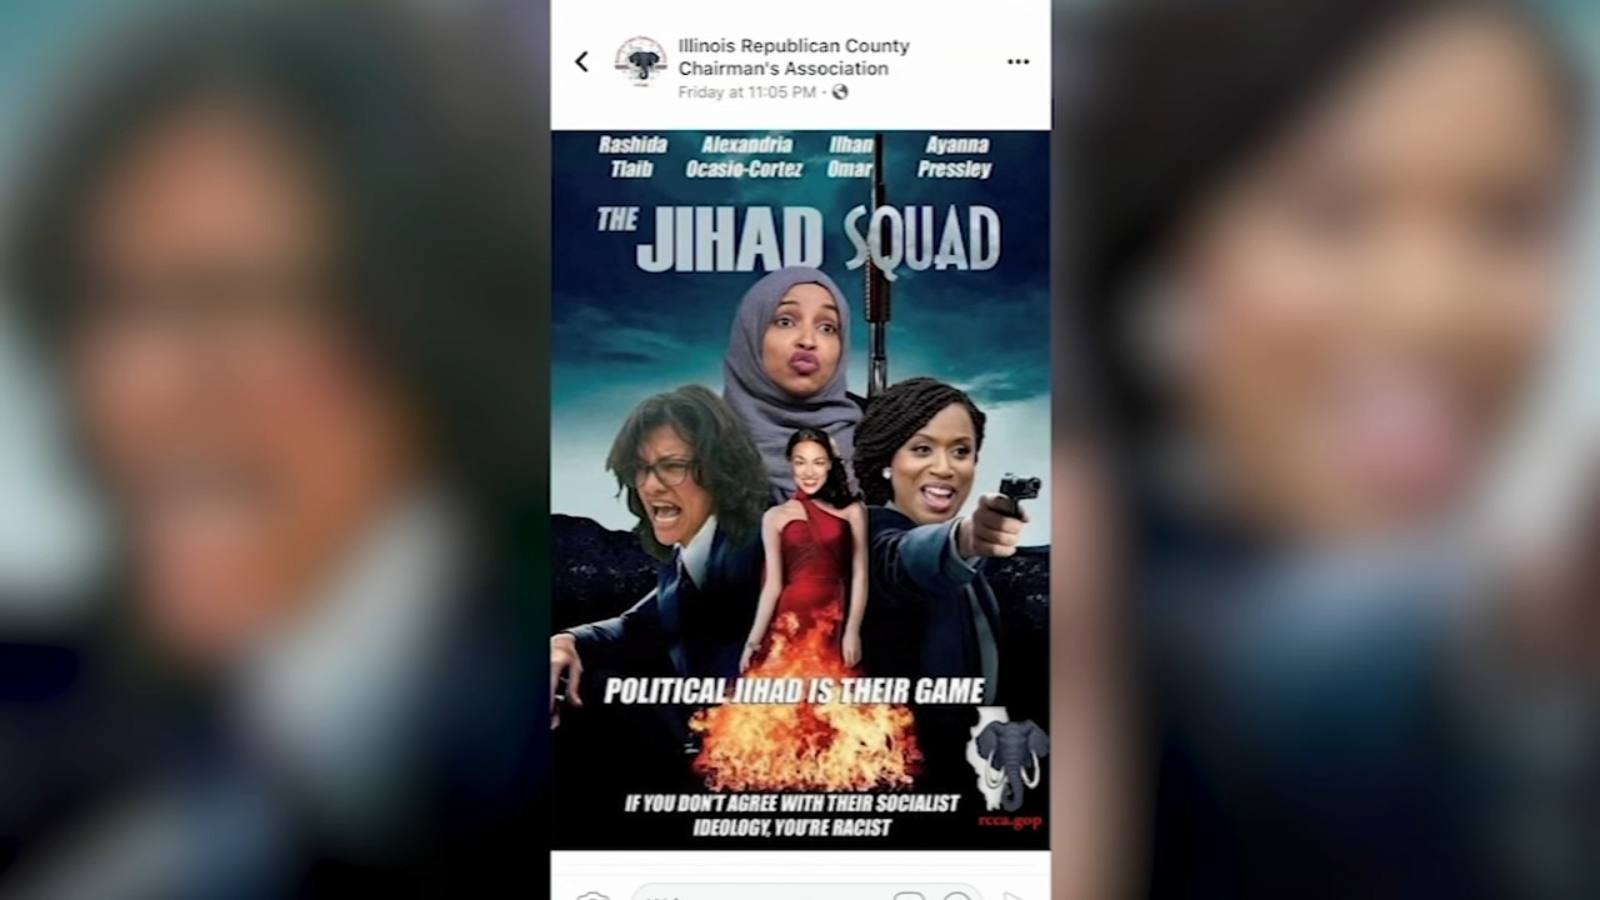 Republican group's 'Jihad Squad' Facebook post draws condemnation